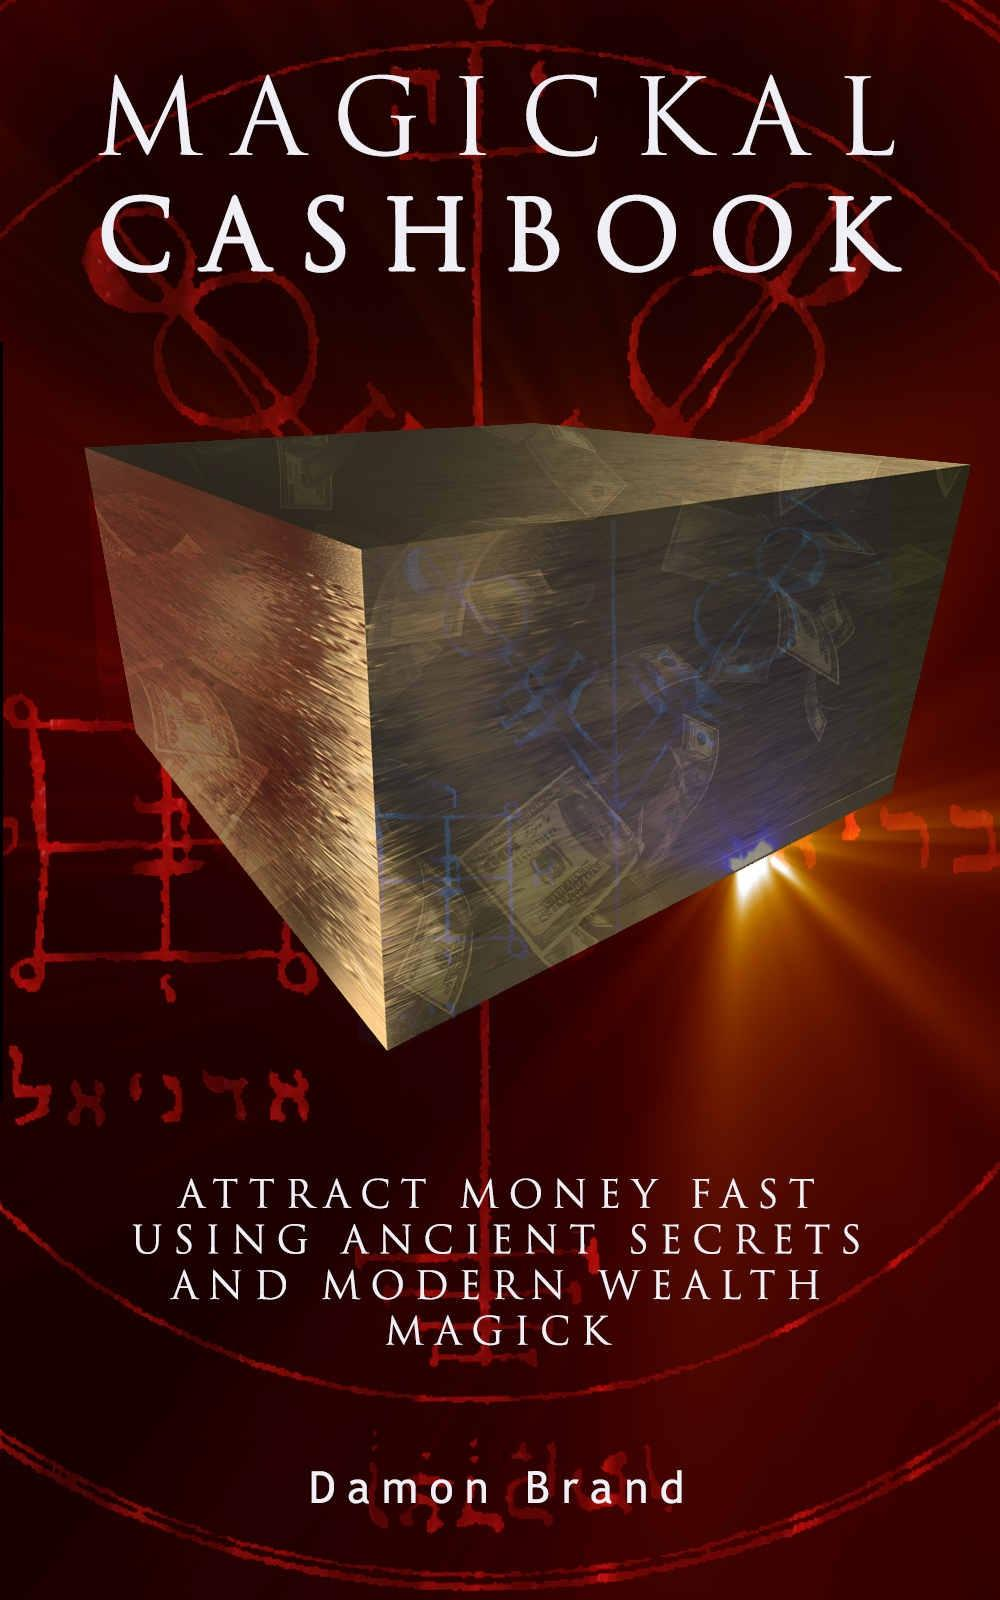 Magickal Cashbook  Attract Money Fast With Ancient Secrets